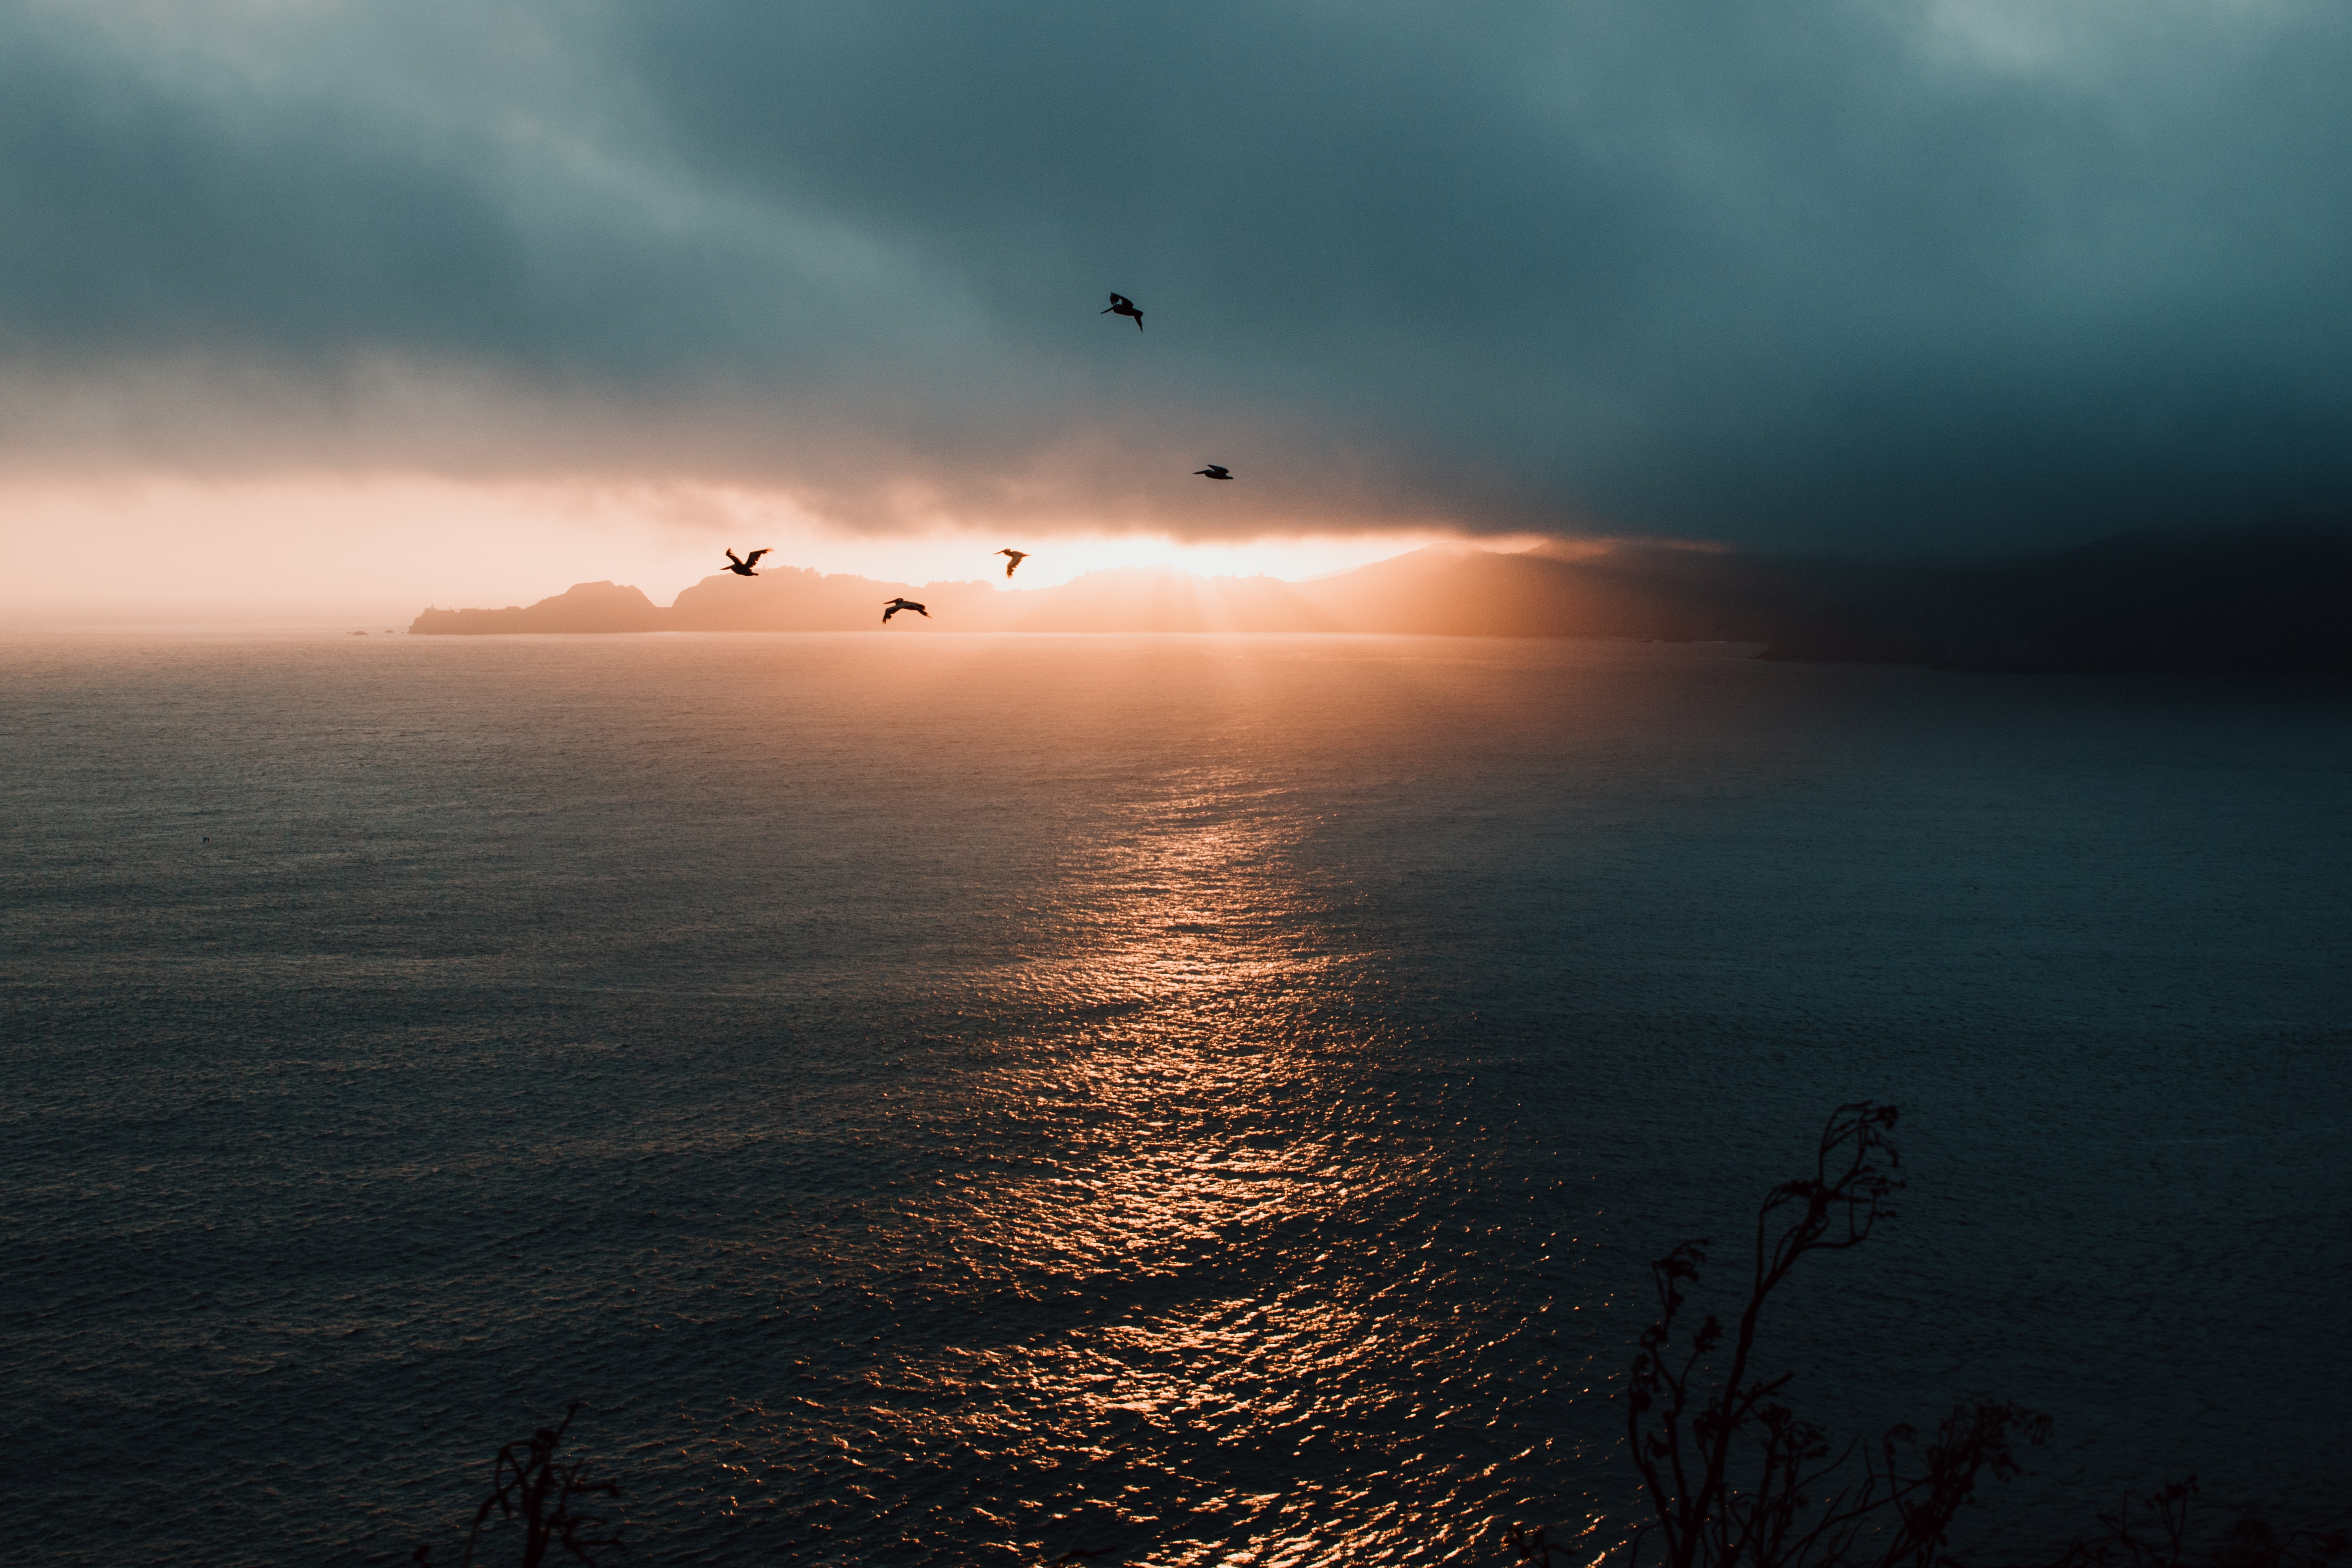 photo of flying birds over body of water